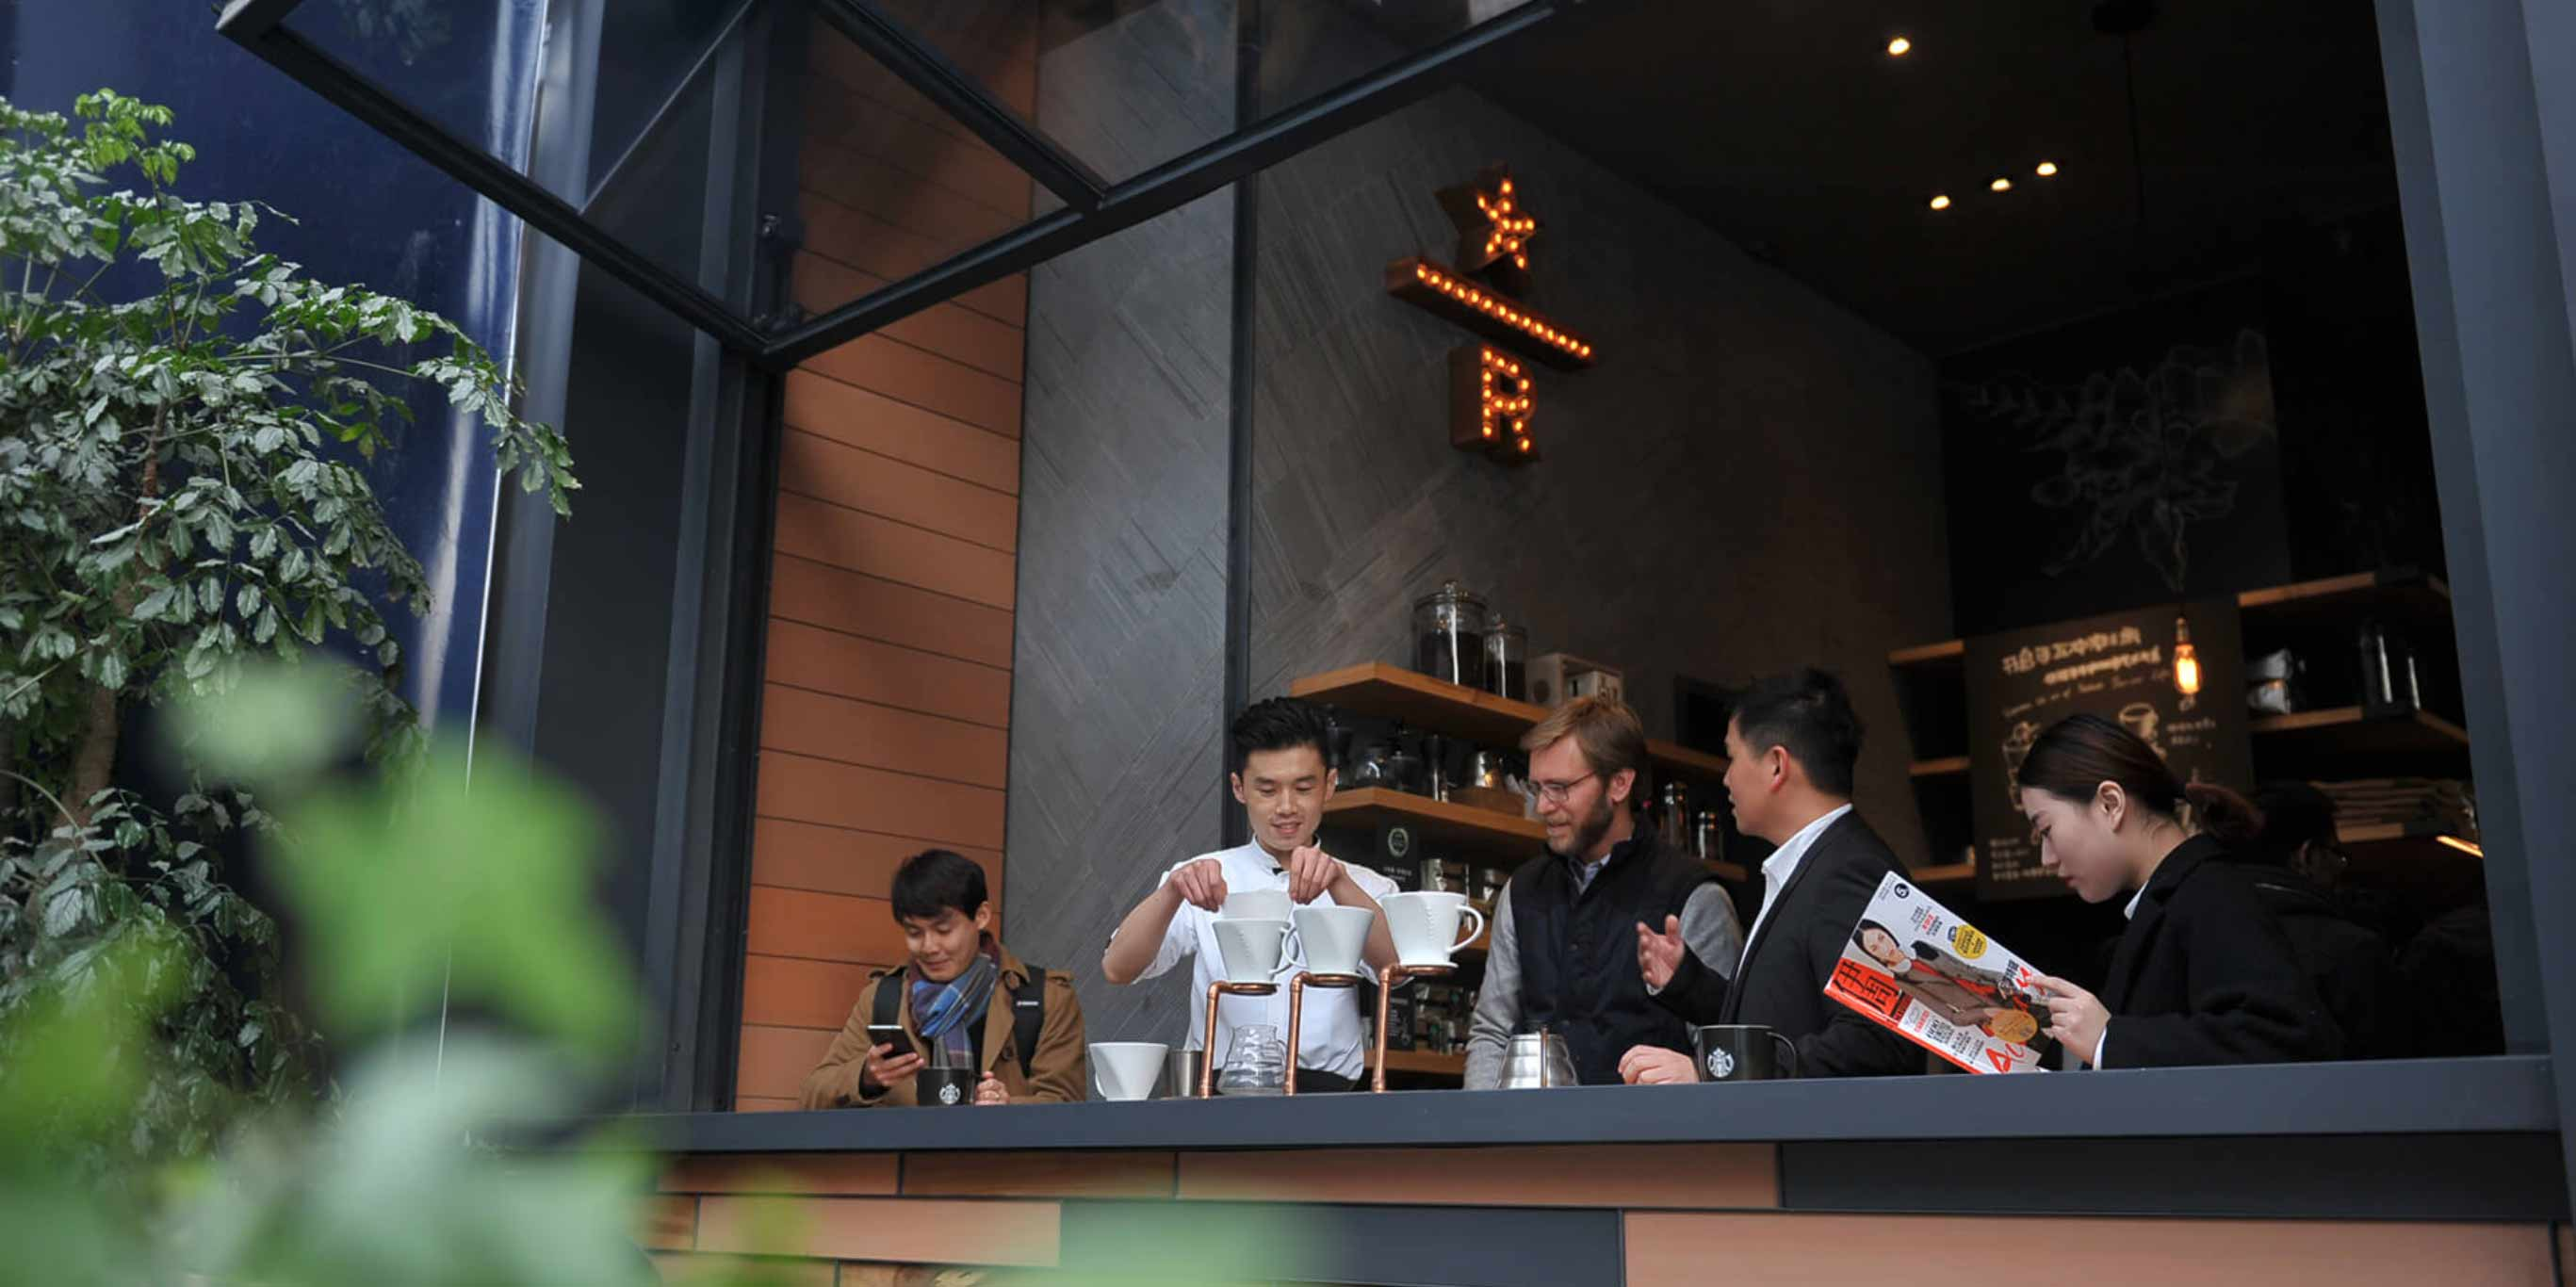 Image of Starbucks employee in China demonstrating pour-over coffee technique.